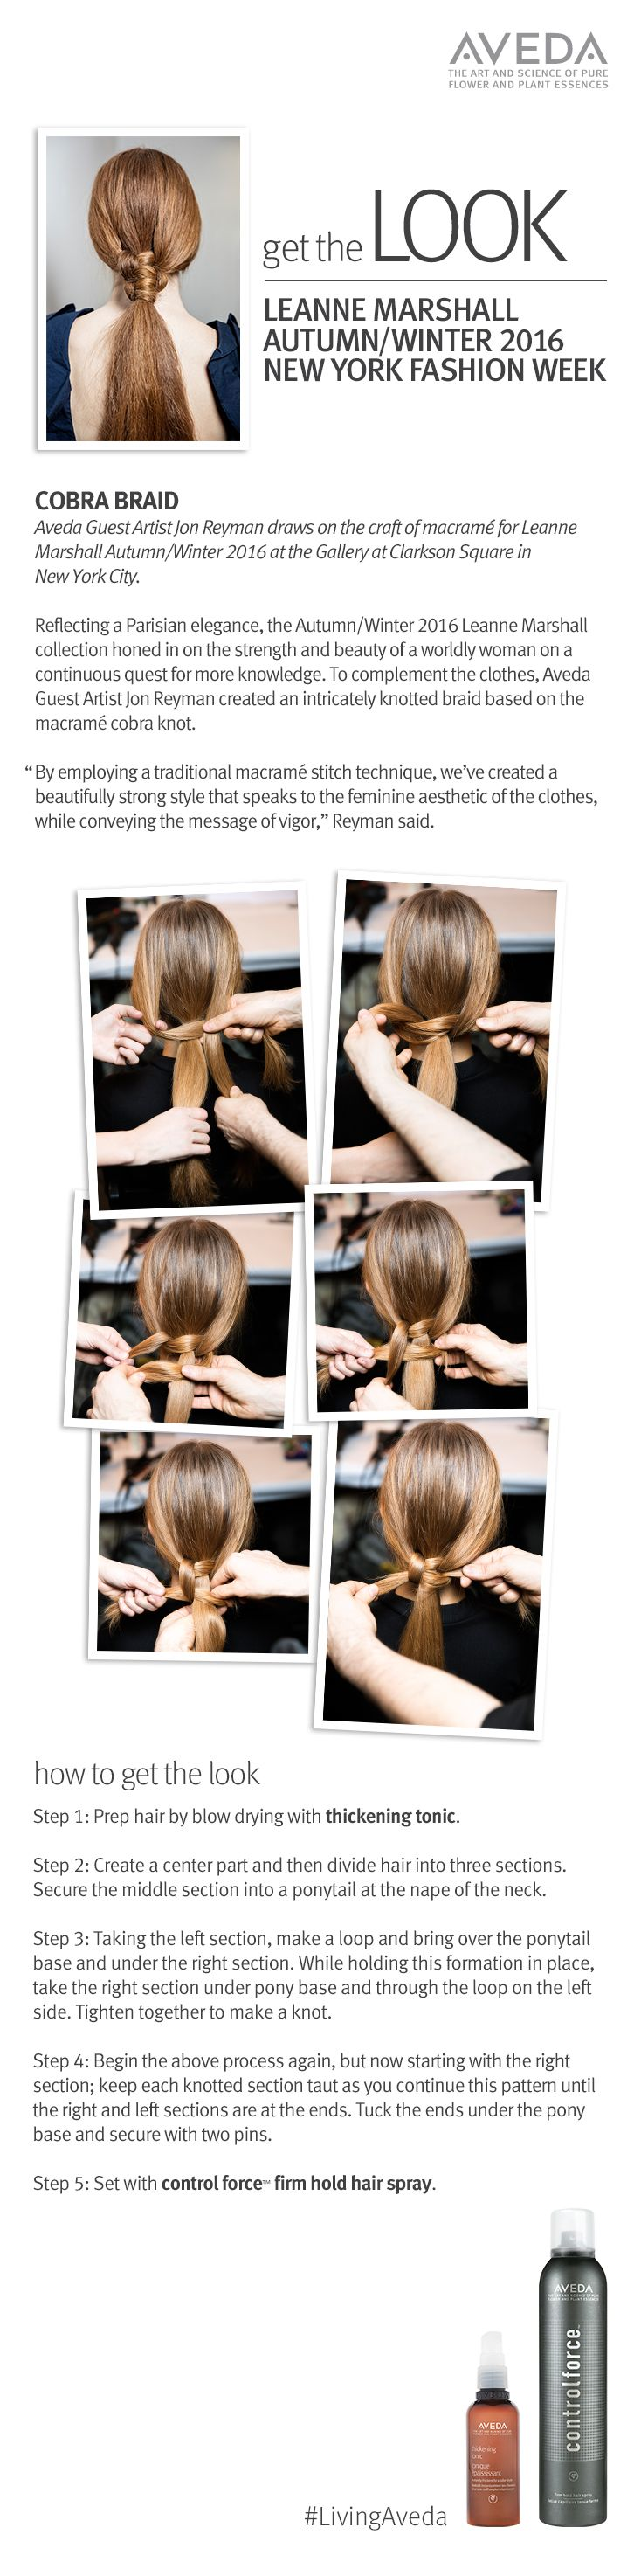 """Try a new twist on your basic ponytail or braid with the """"cobra braid"""" created by Jon Reyman for Leanne Marshall F/W 2016."""